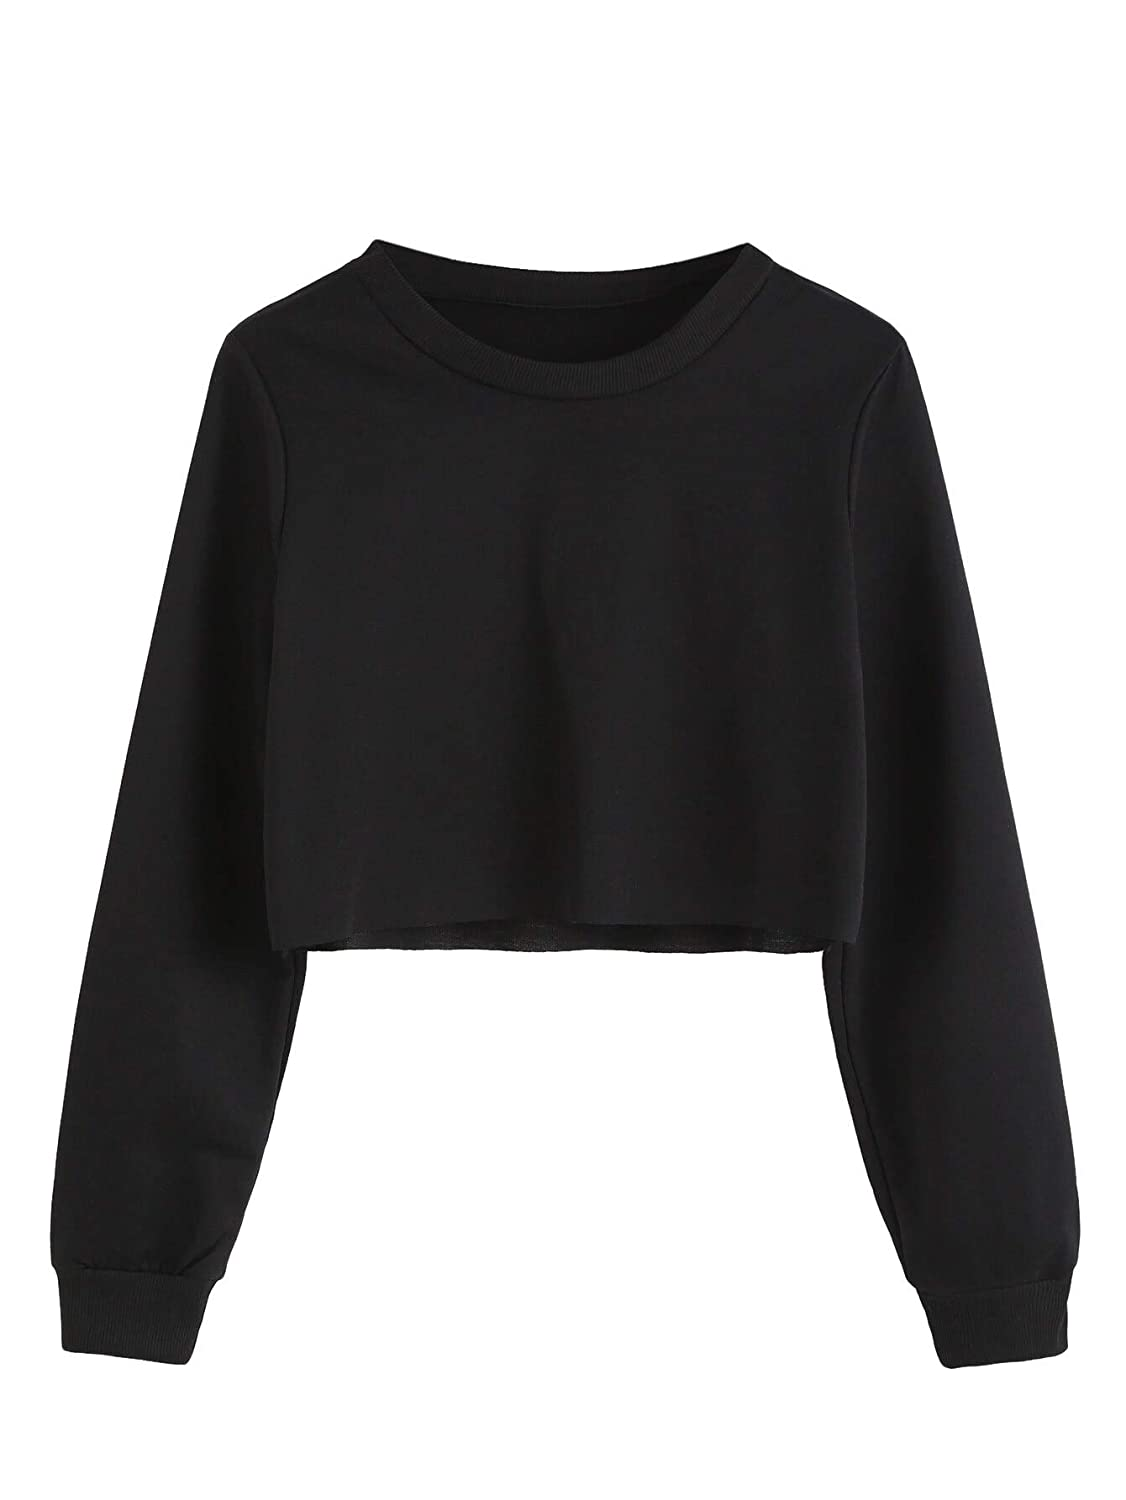 SOLY HUX Womens Casual Basic Long Sleeve Round Neck Pullover Crop Top Sweatshirt